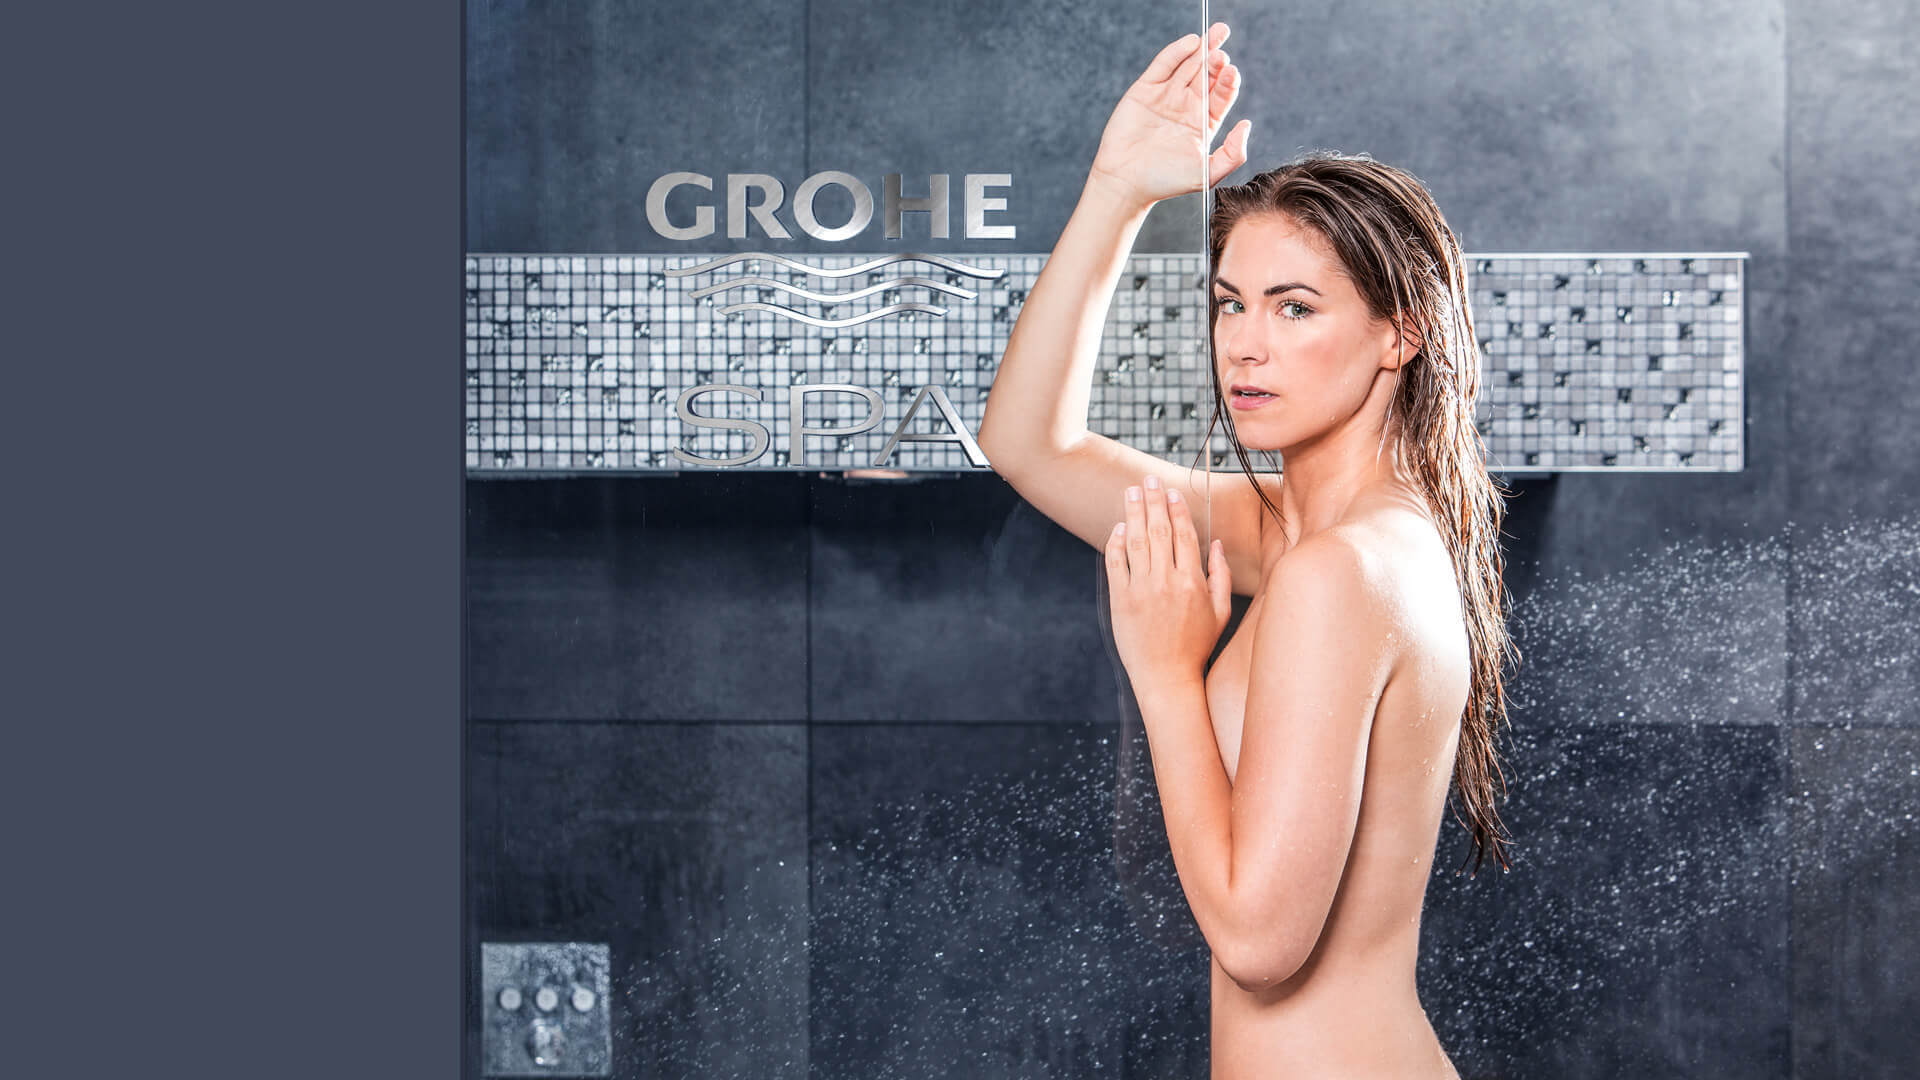 Lusebrink Grohe Spa | Businessfotografie